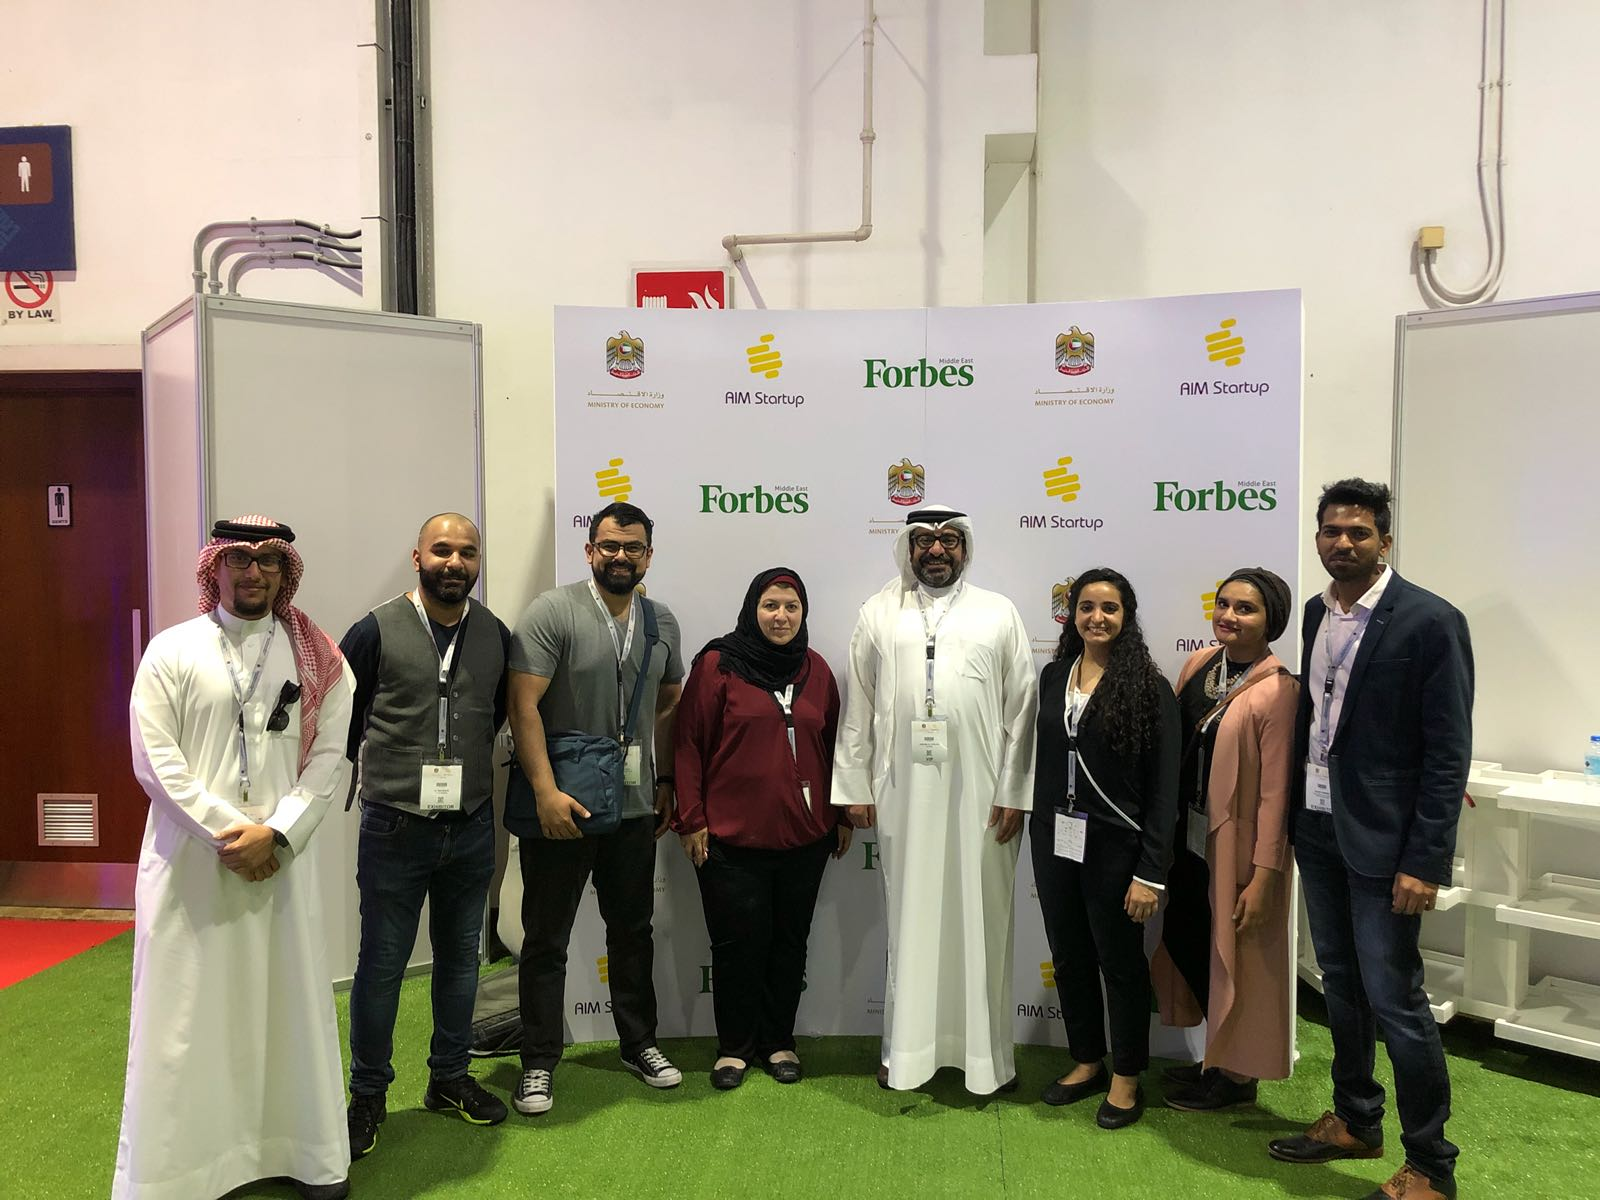 200 startups attended the AIM Startup and guess which 5 are from Bahrain?